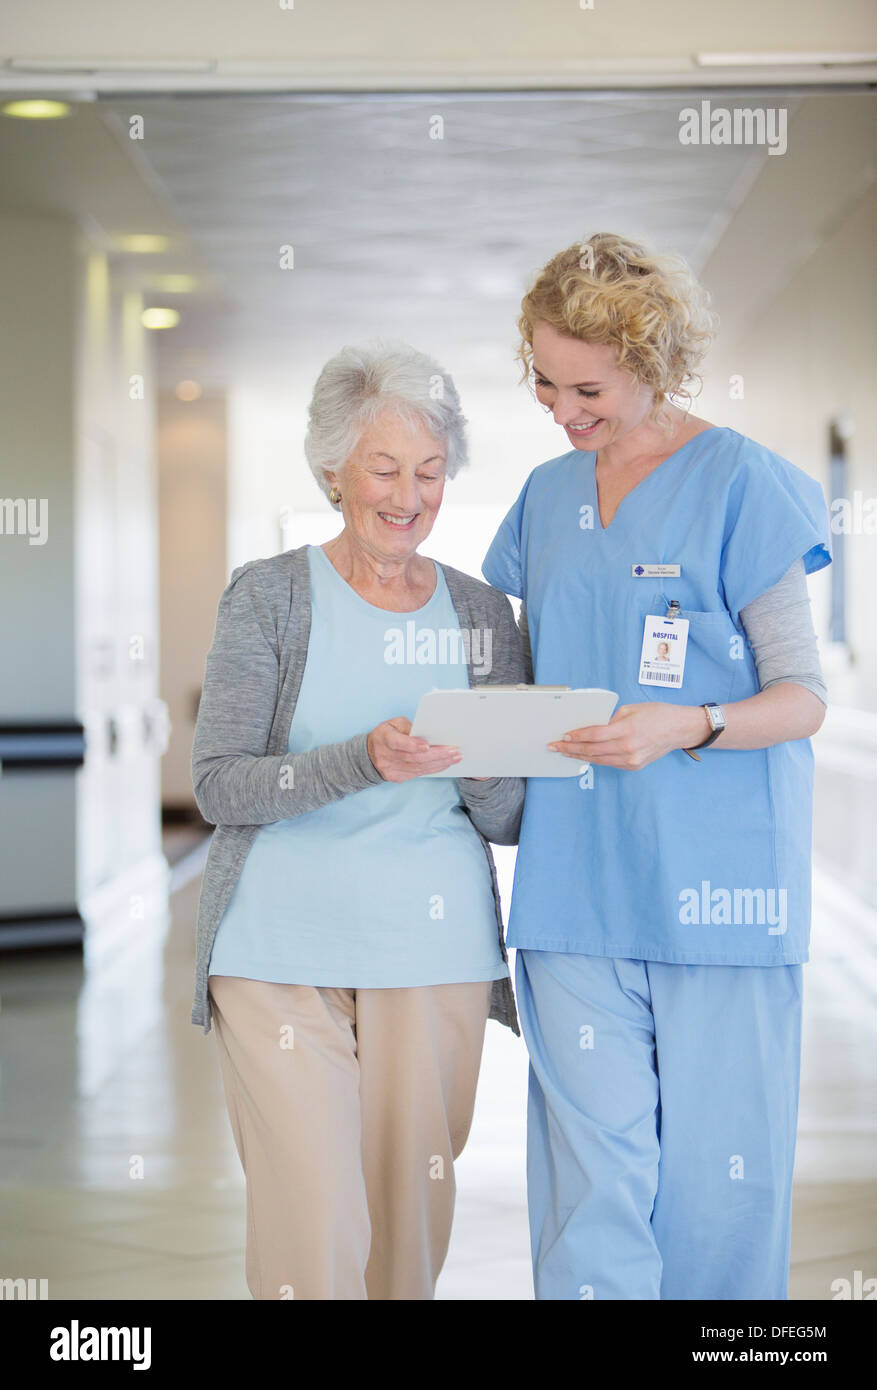 Nurse and aging patient reading chart in hospital corridor - Stock Image